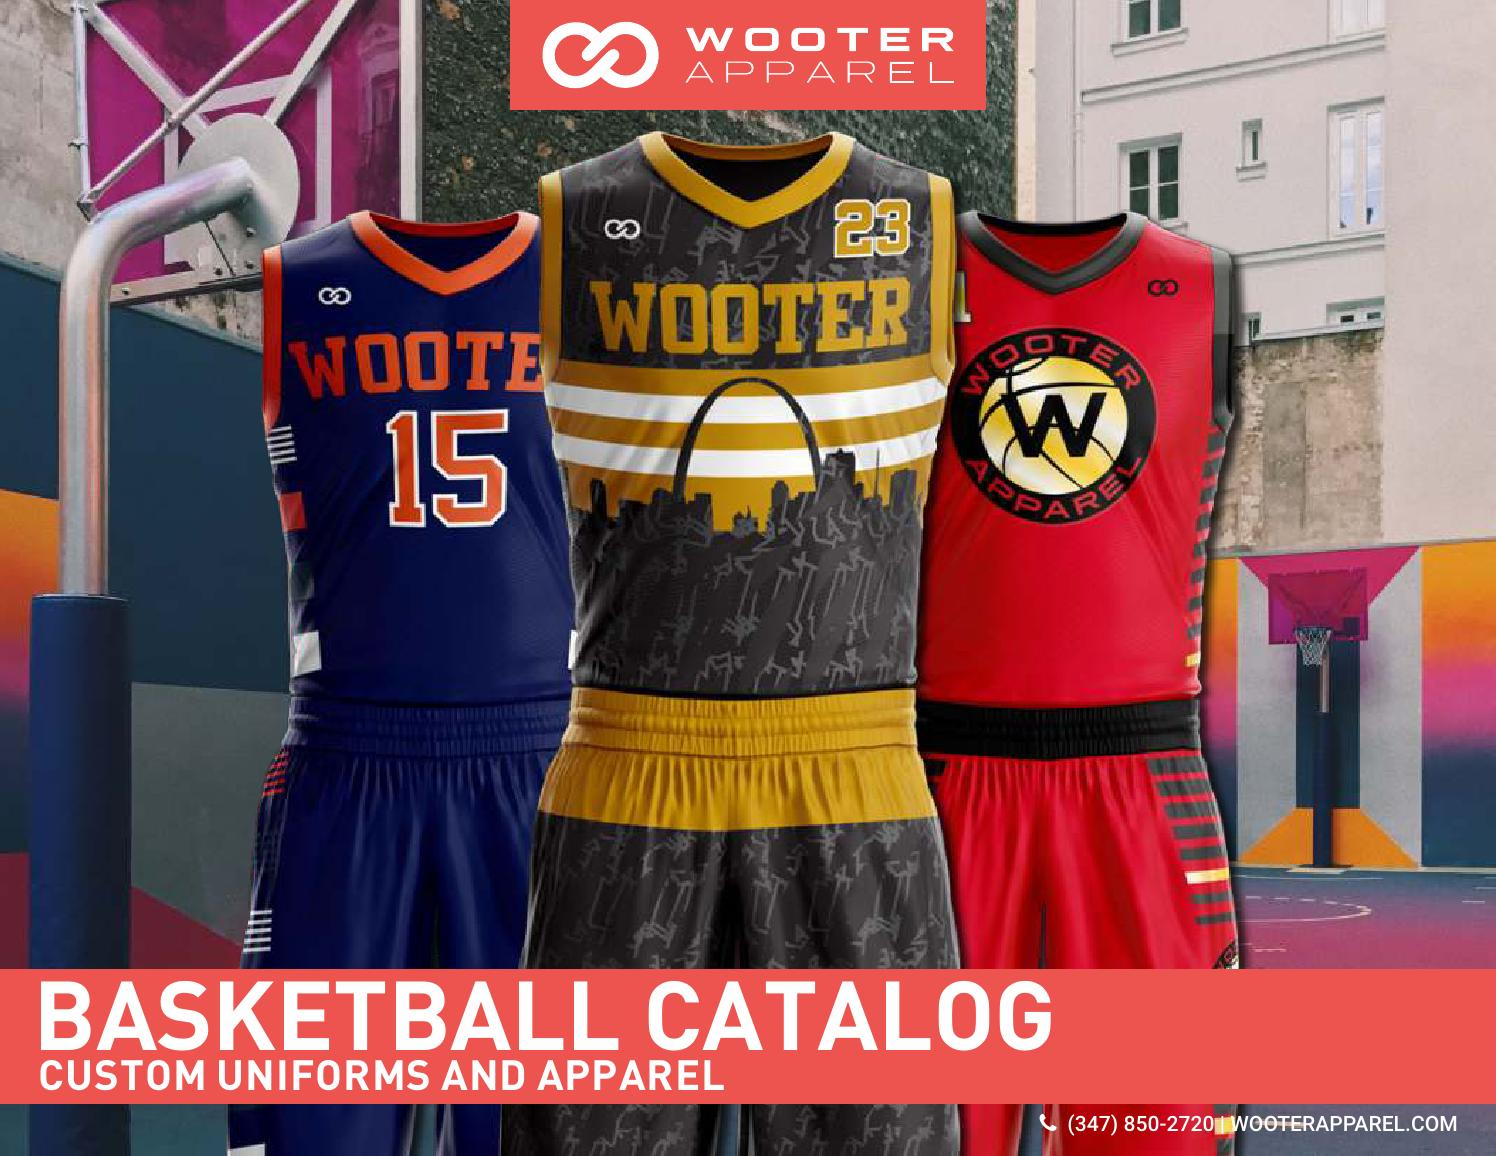 0bfa726c145 Wooter Basketball Catalog (Low Res) by Wooter LLC - issuu